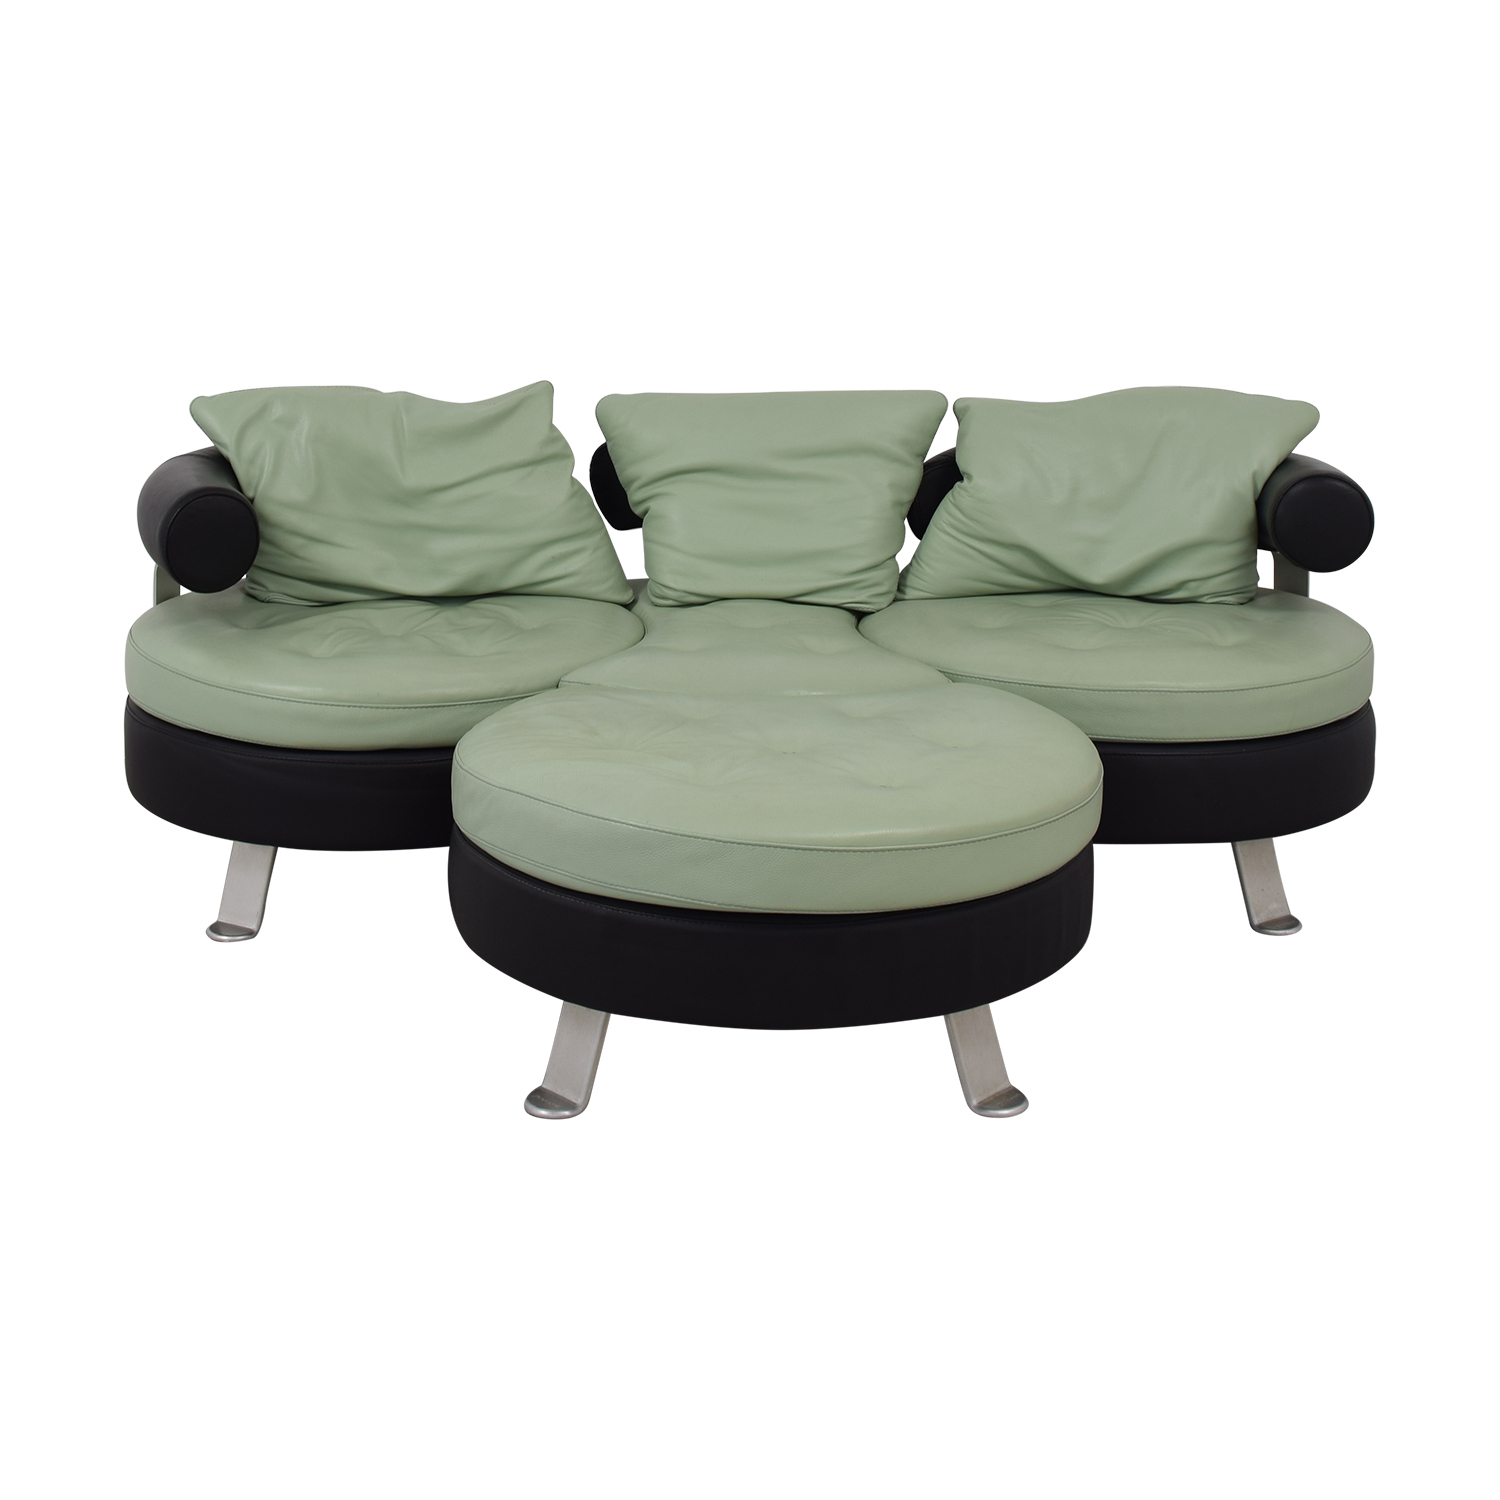 shop Formenti Formenti Swiveling Sofa with Matching Ottoman online